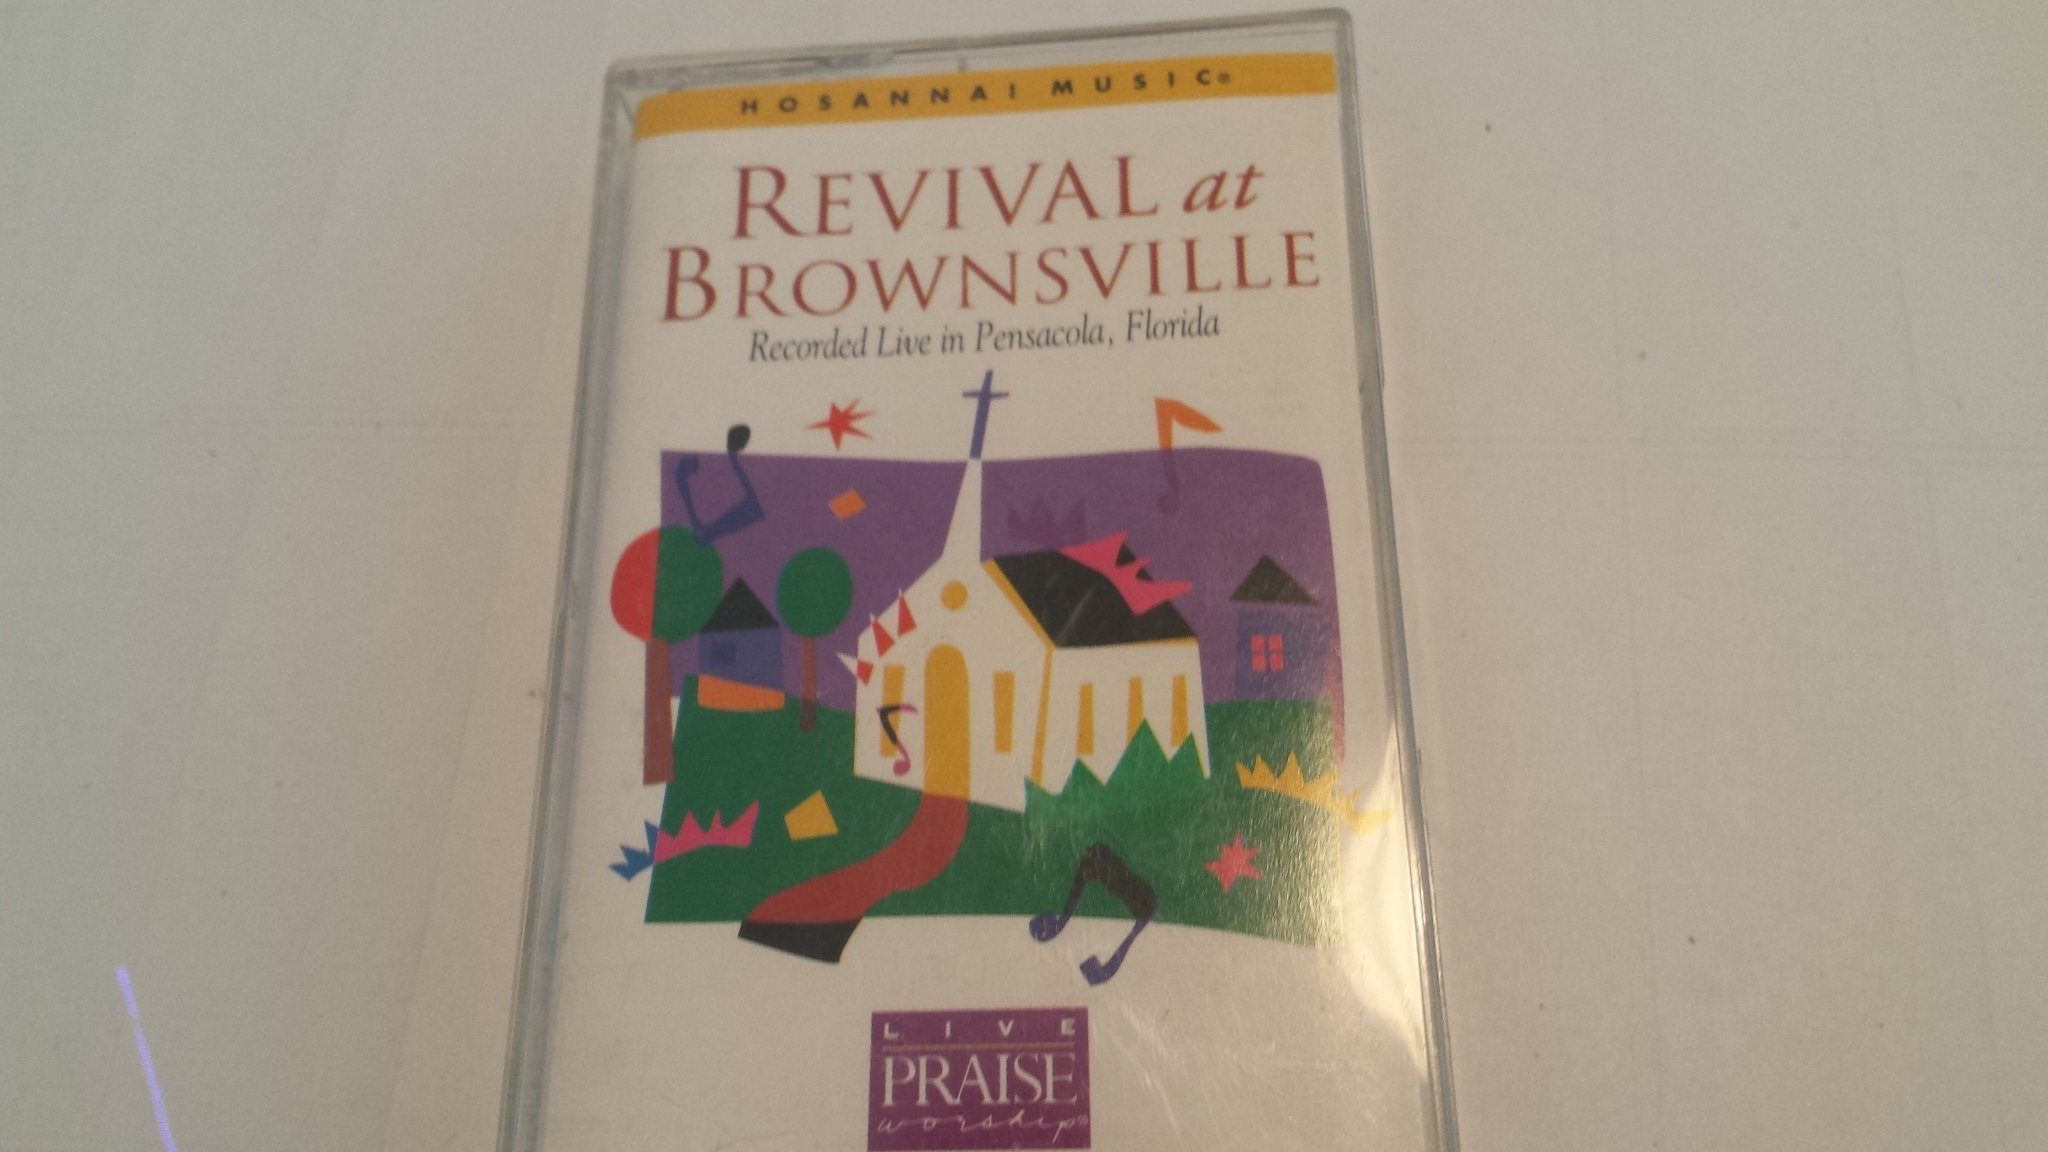 Revival at Brownsville: Recorded Live in Pensacola, Florida [Christian Praise, Southern Gospel Cassette]